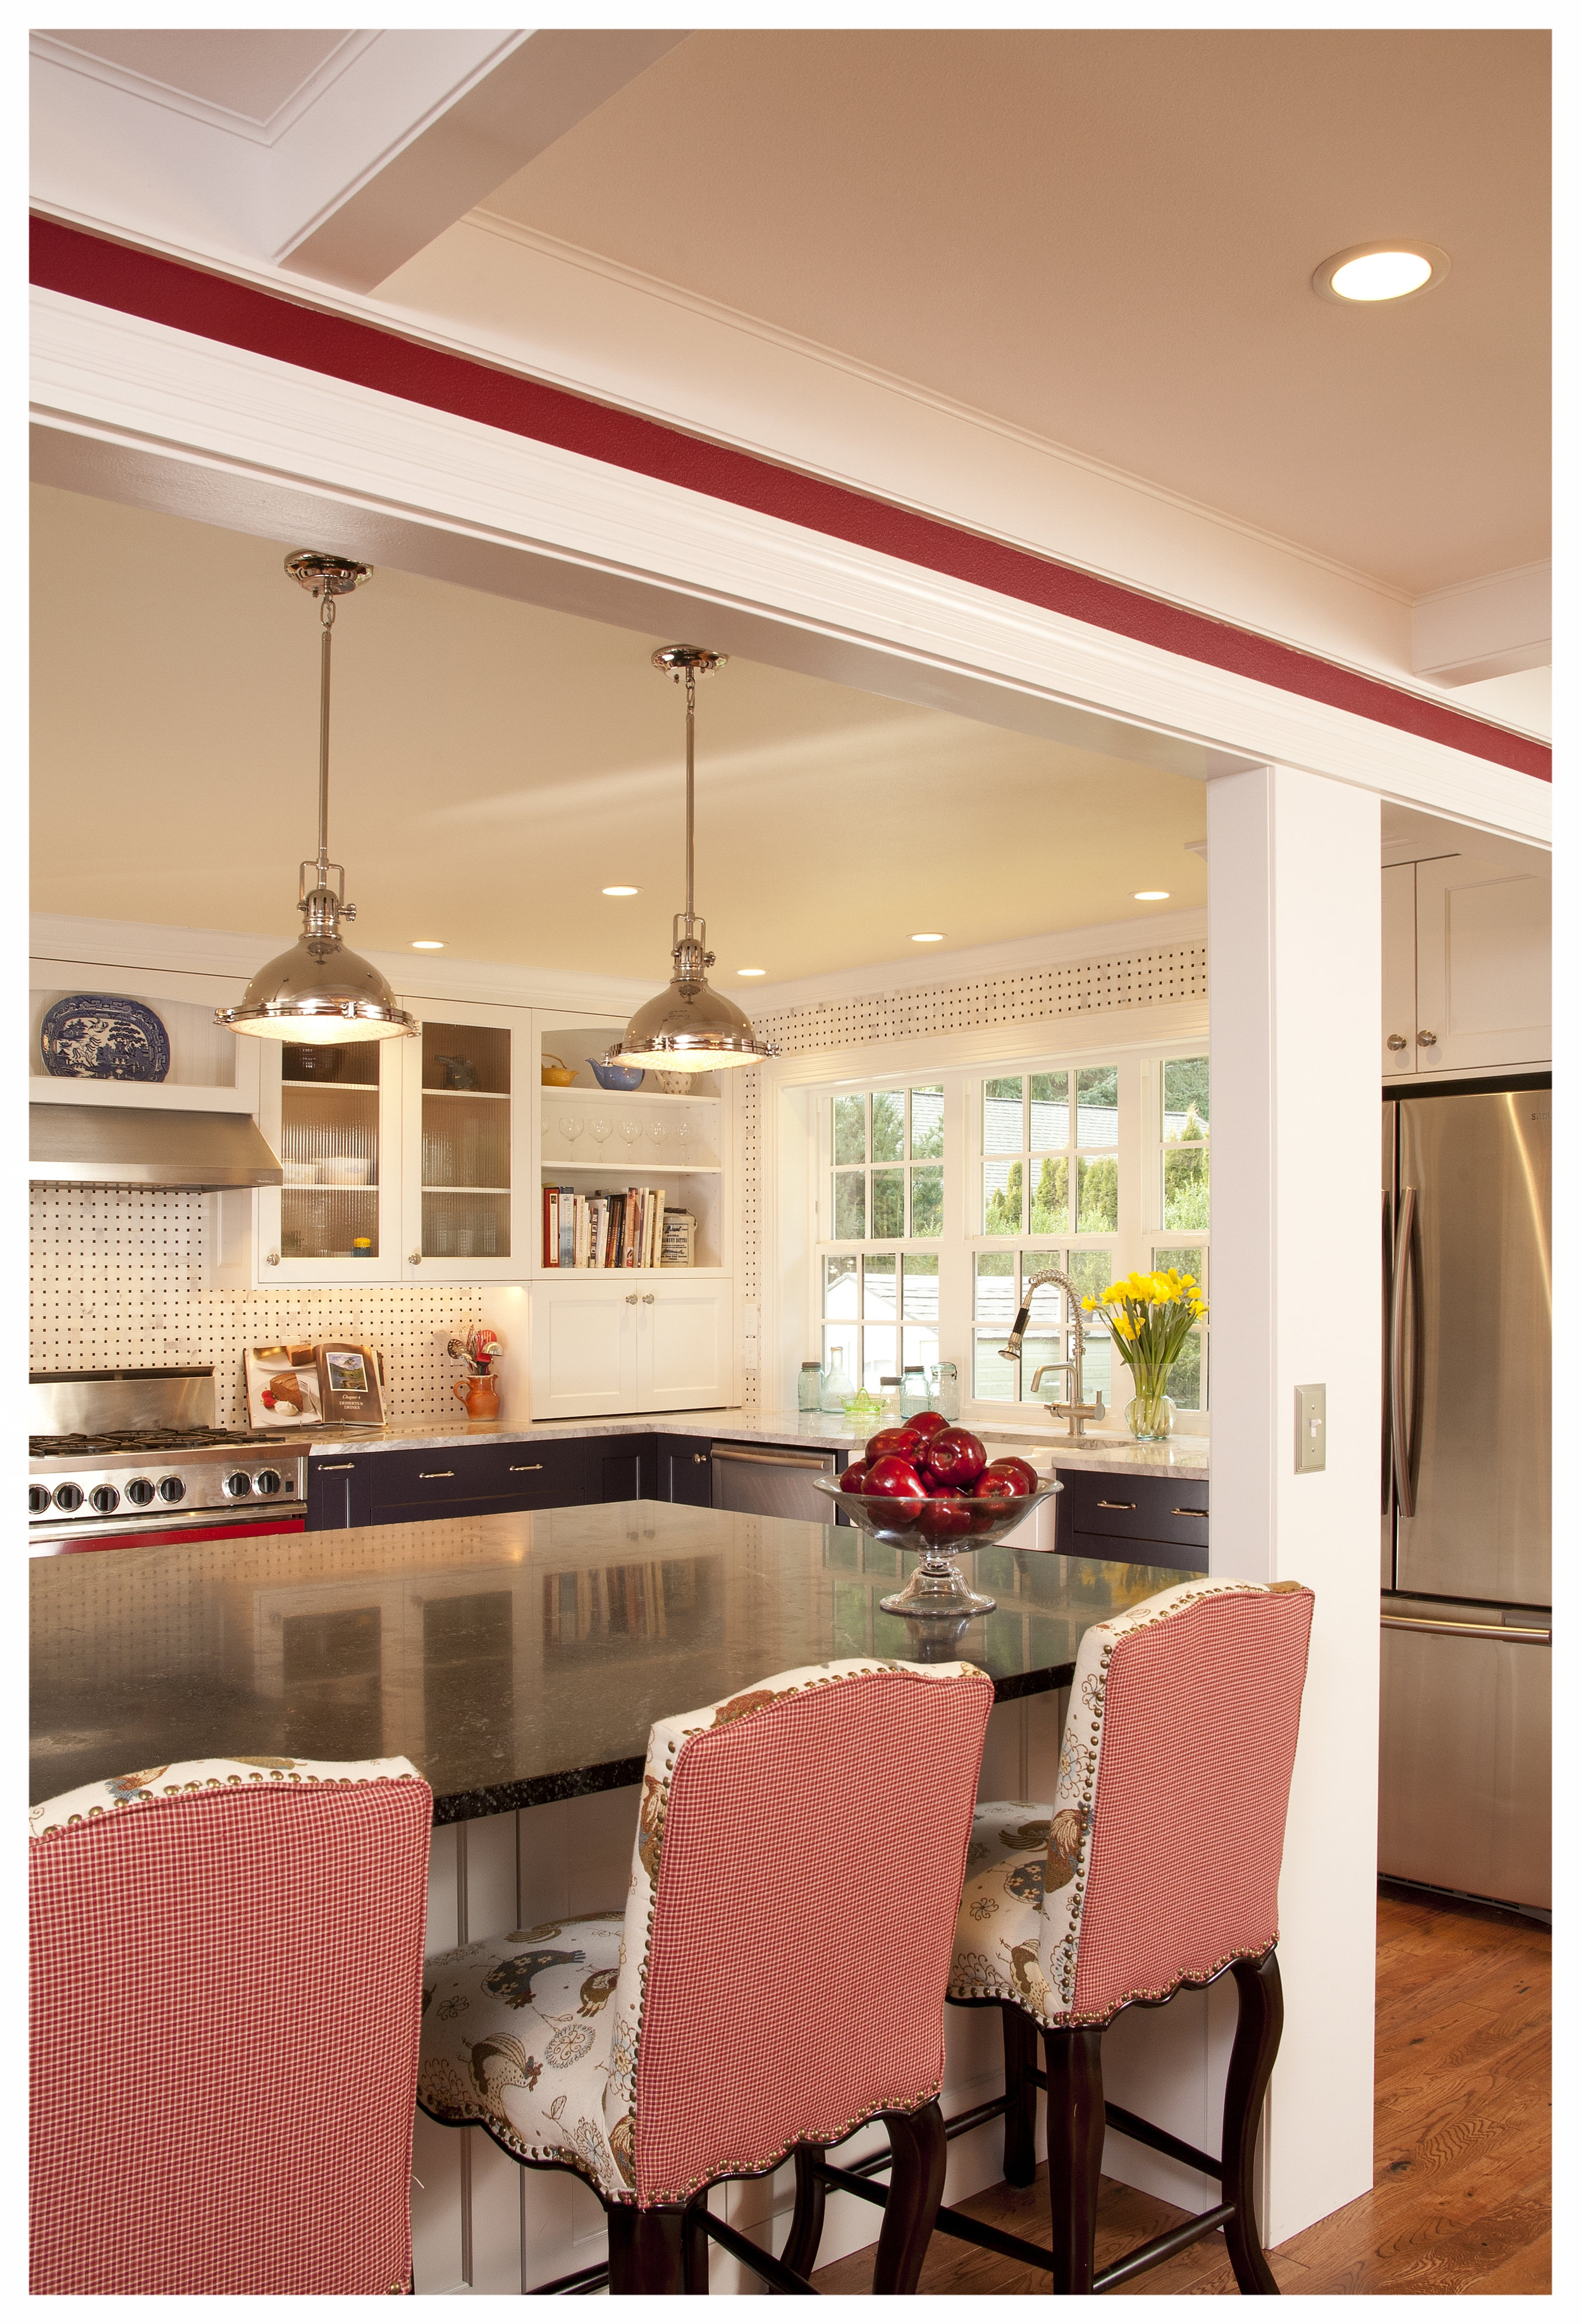 Woodiville Country Kitchen 7.jpg